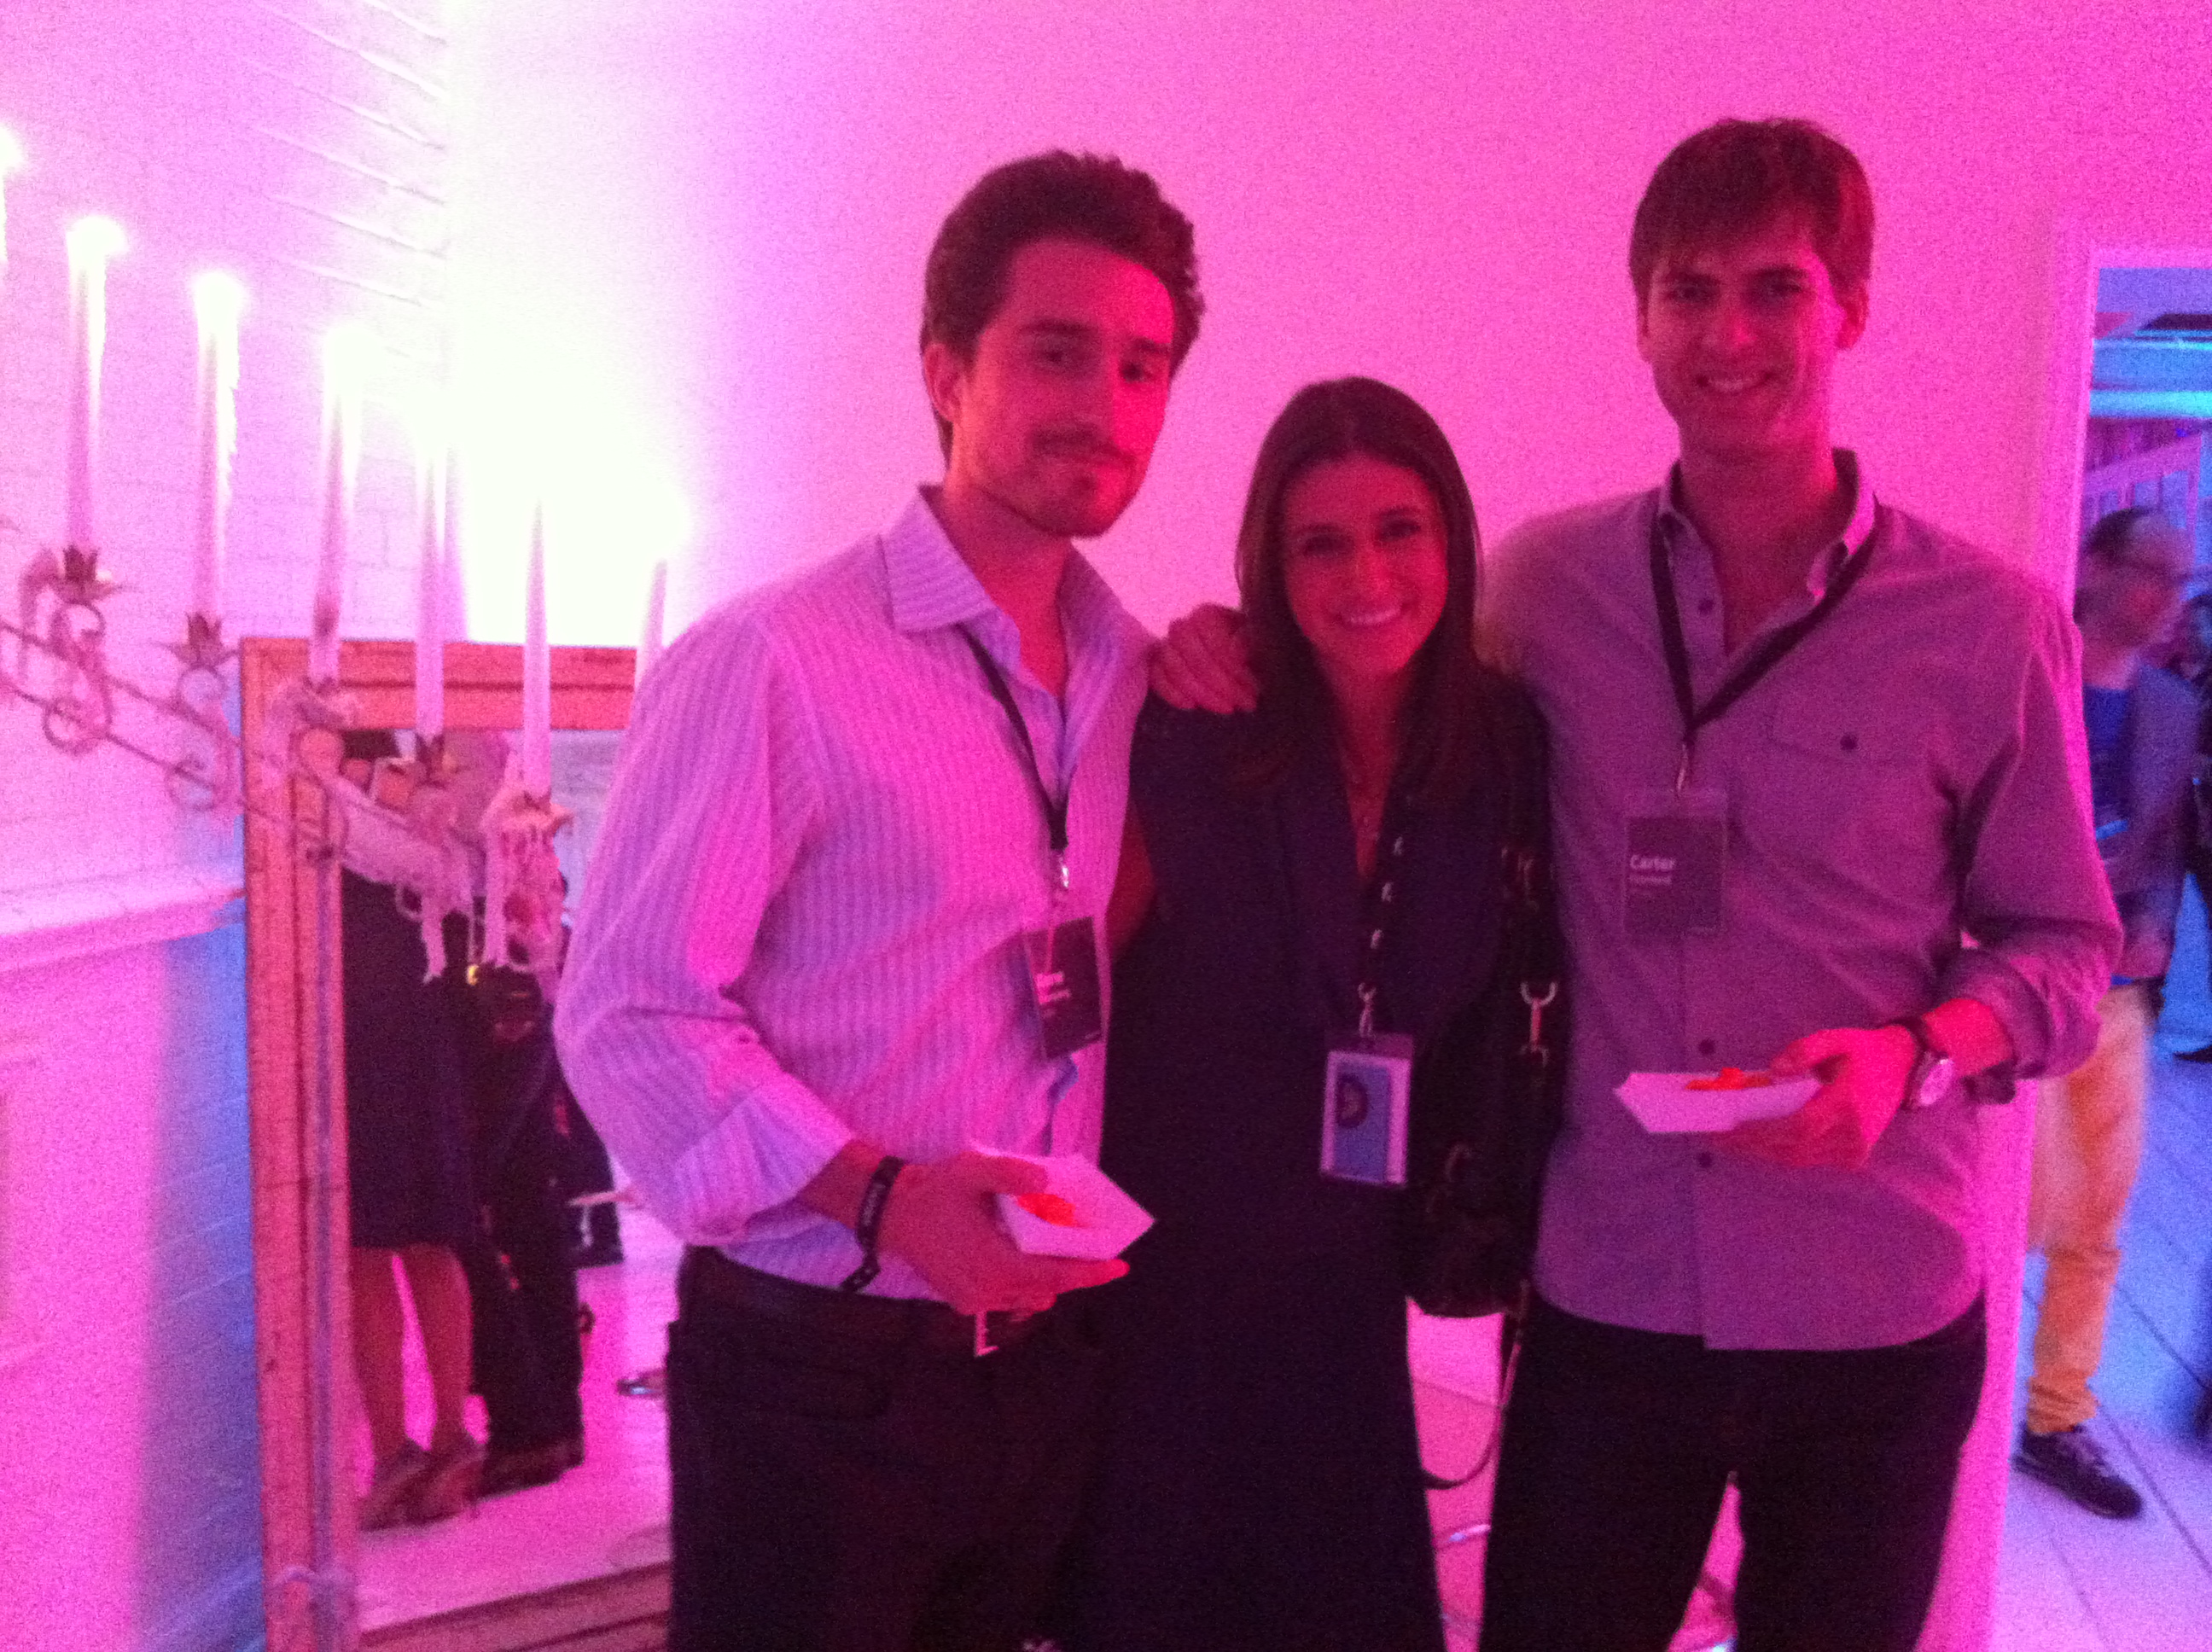 Locu's Rene Reinsberg, CNN Money's Laurie Segall and Artsy's Carter Cleveland at Gary's Loft at F.ounders NY 2012